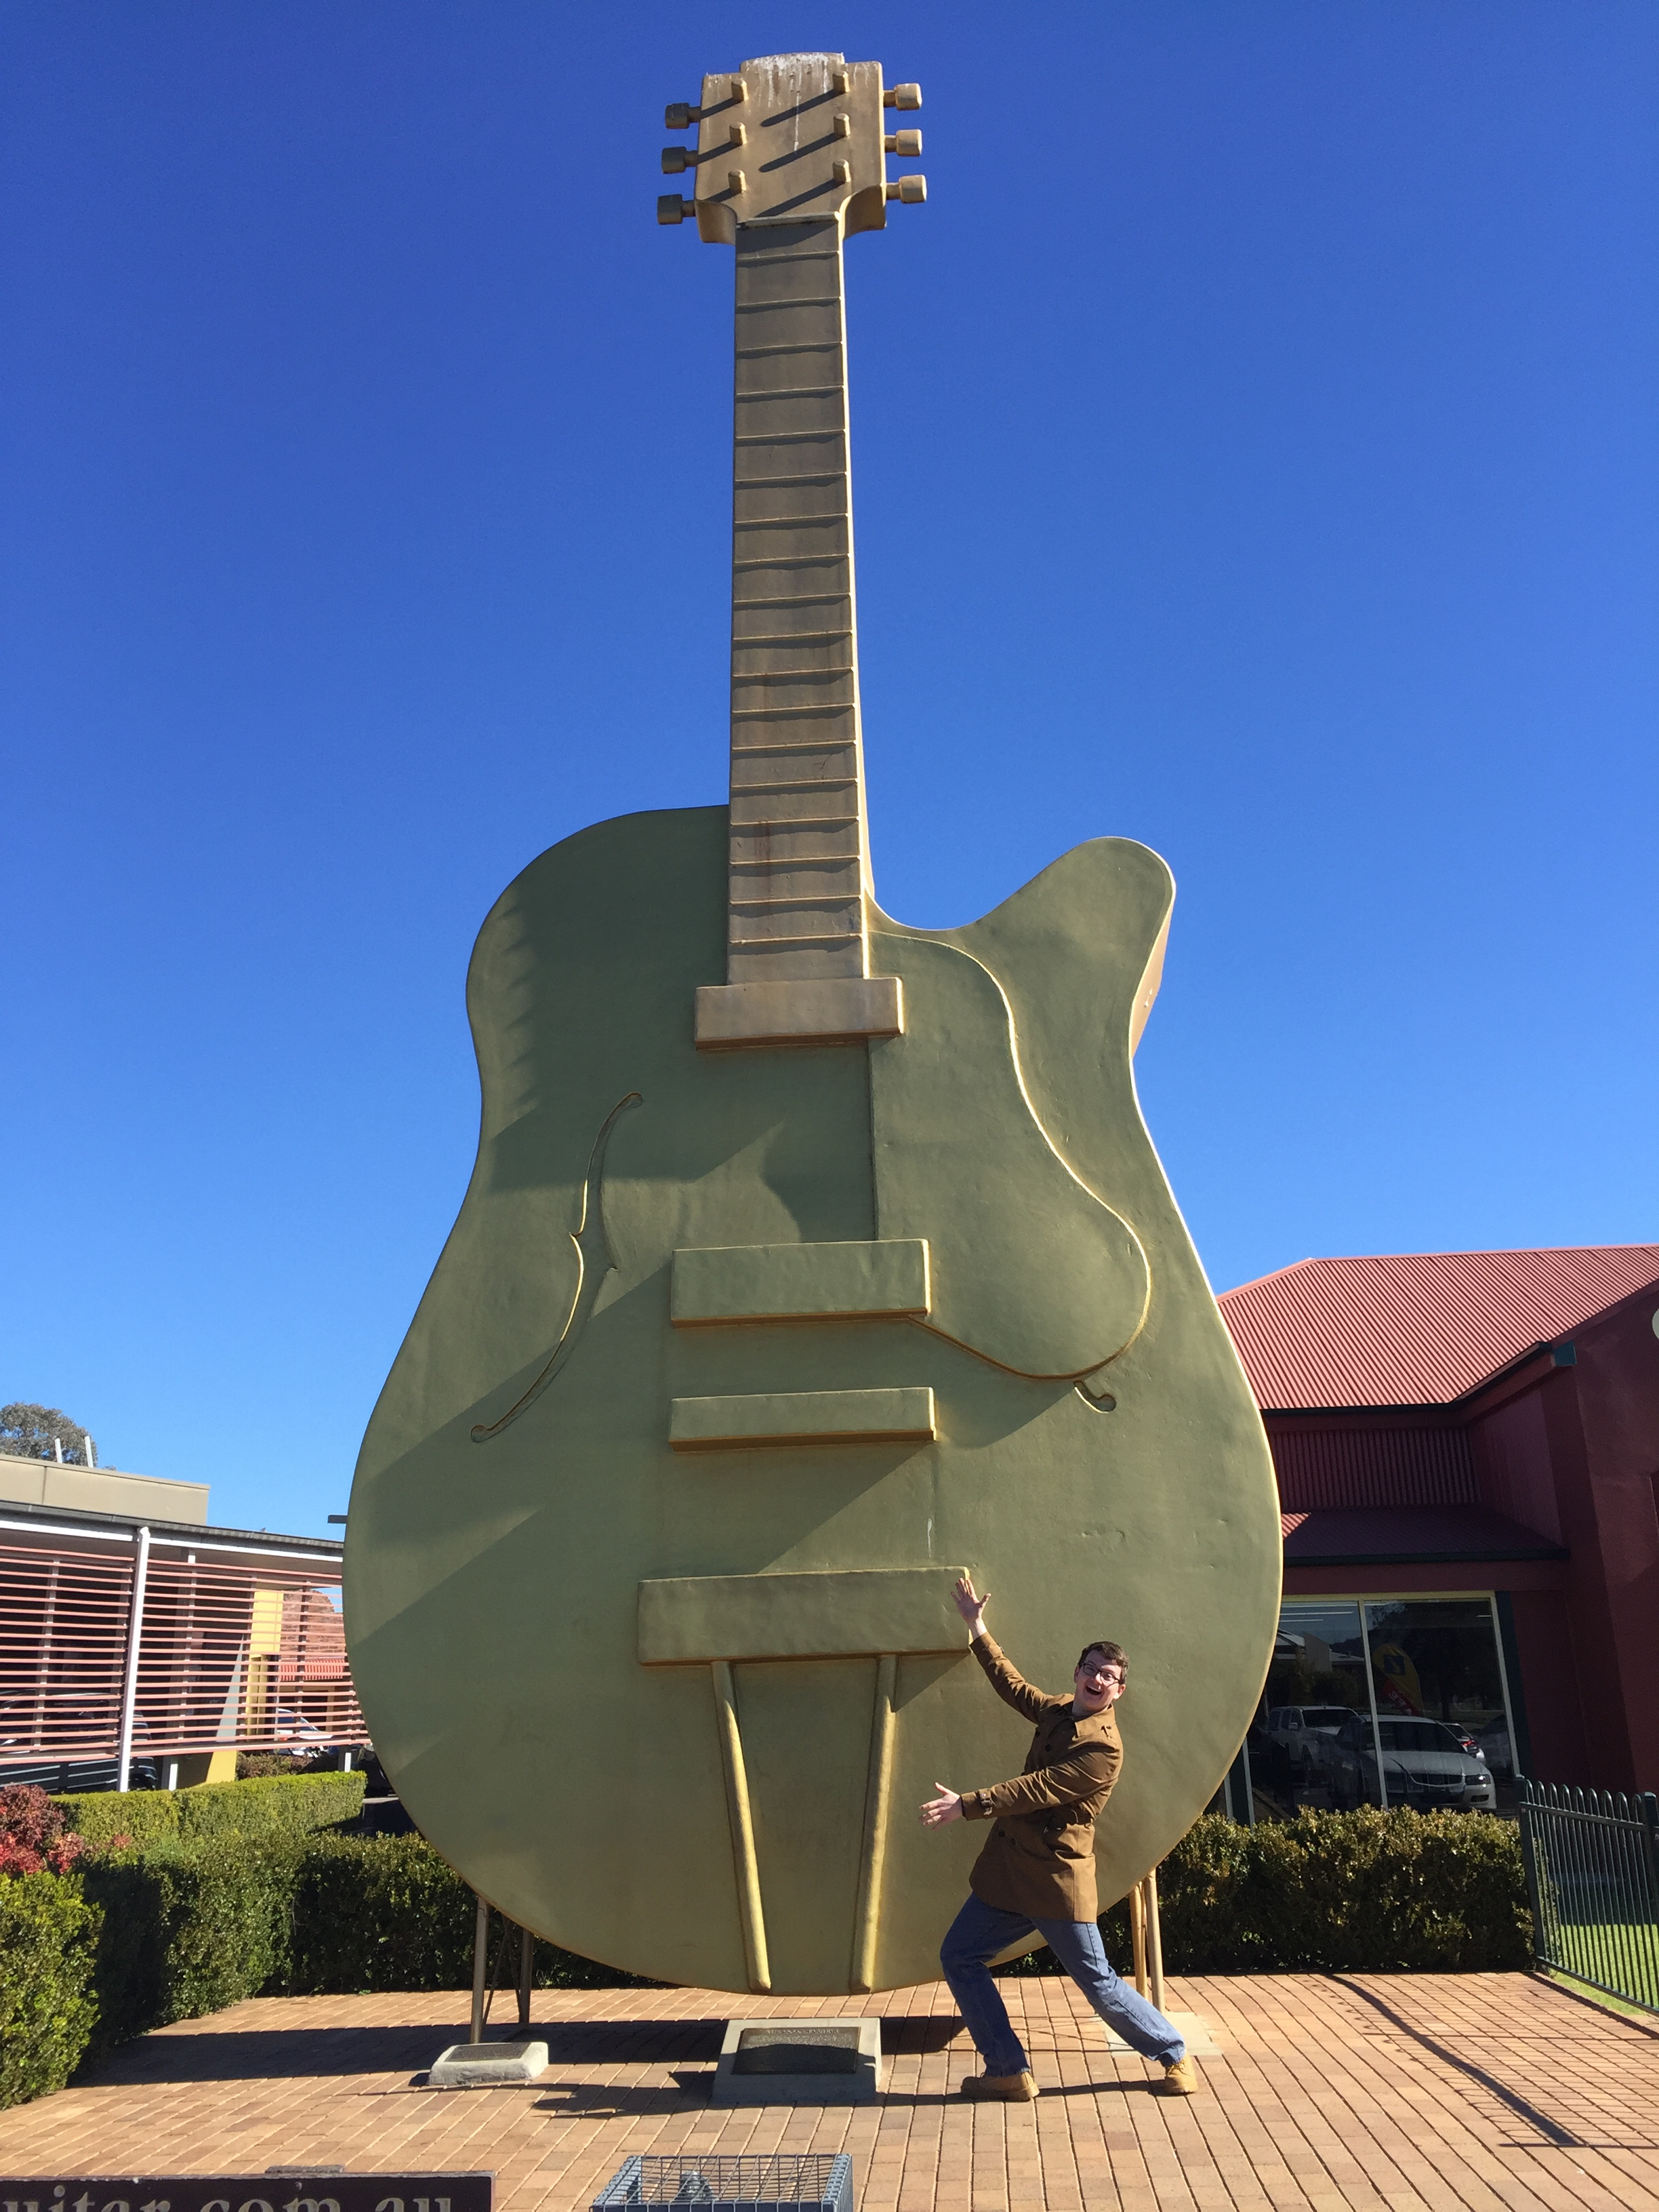 The Big Golden Guitar, Tamworth NSW. Photo: Peter Scott, © 2016.